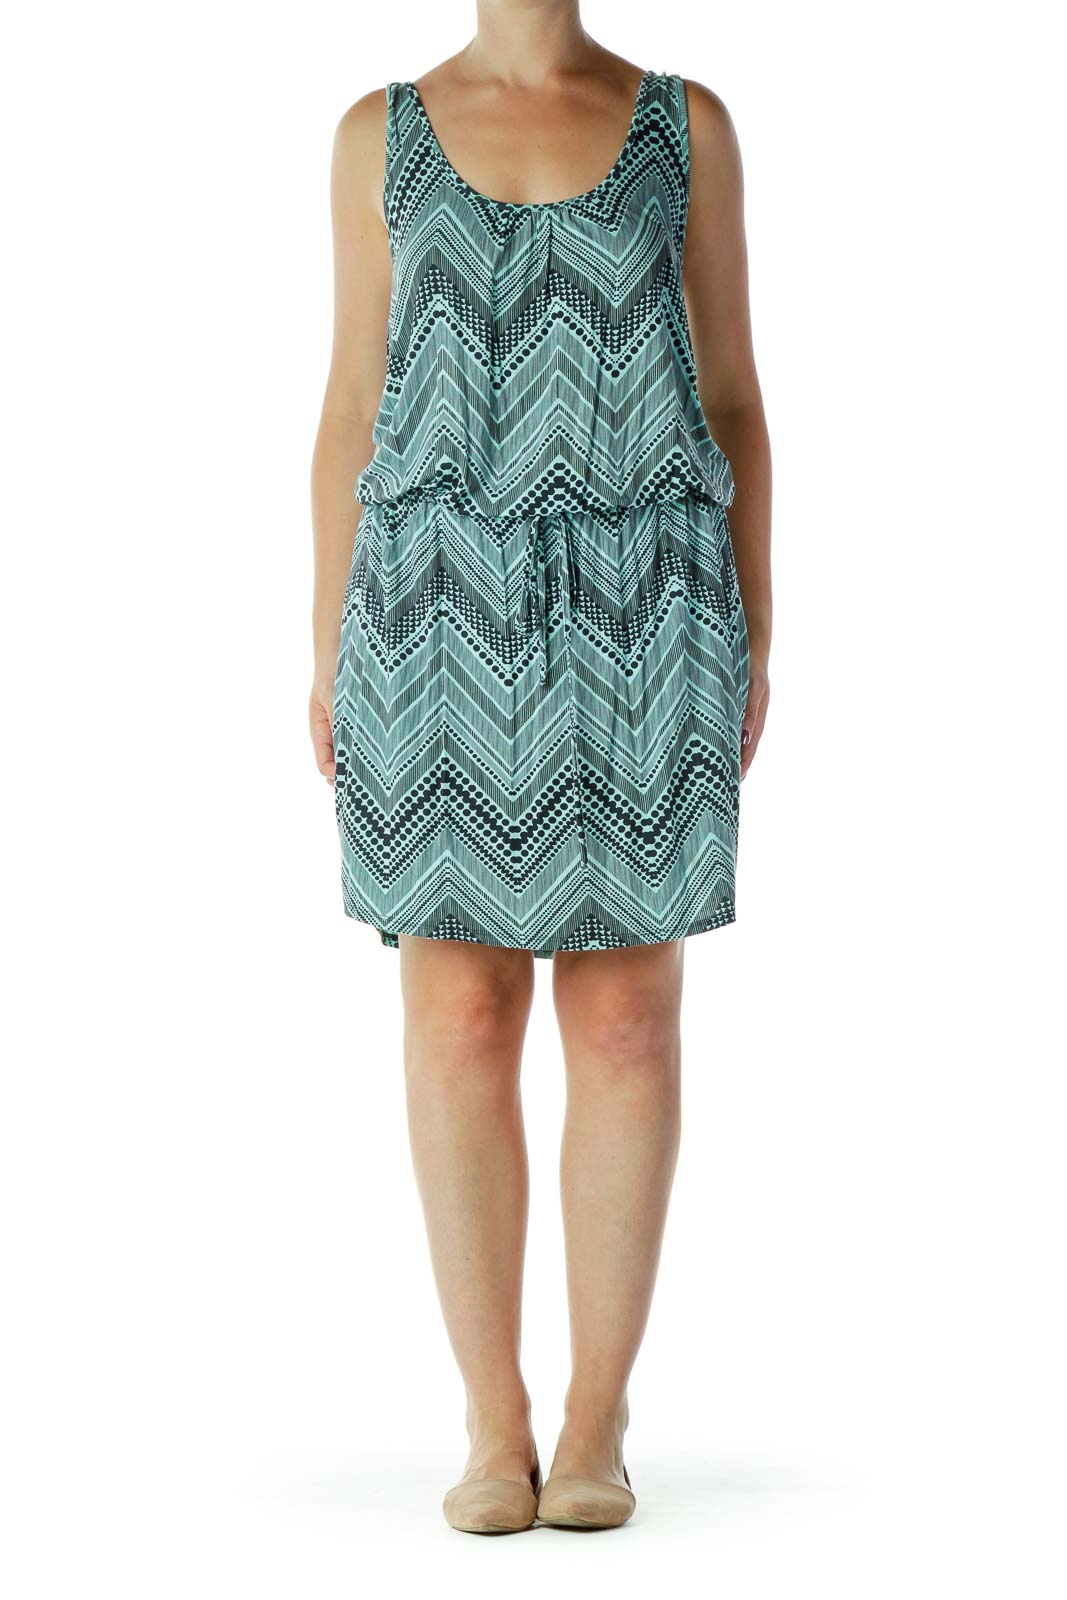 Teal & Black Chevron Dress